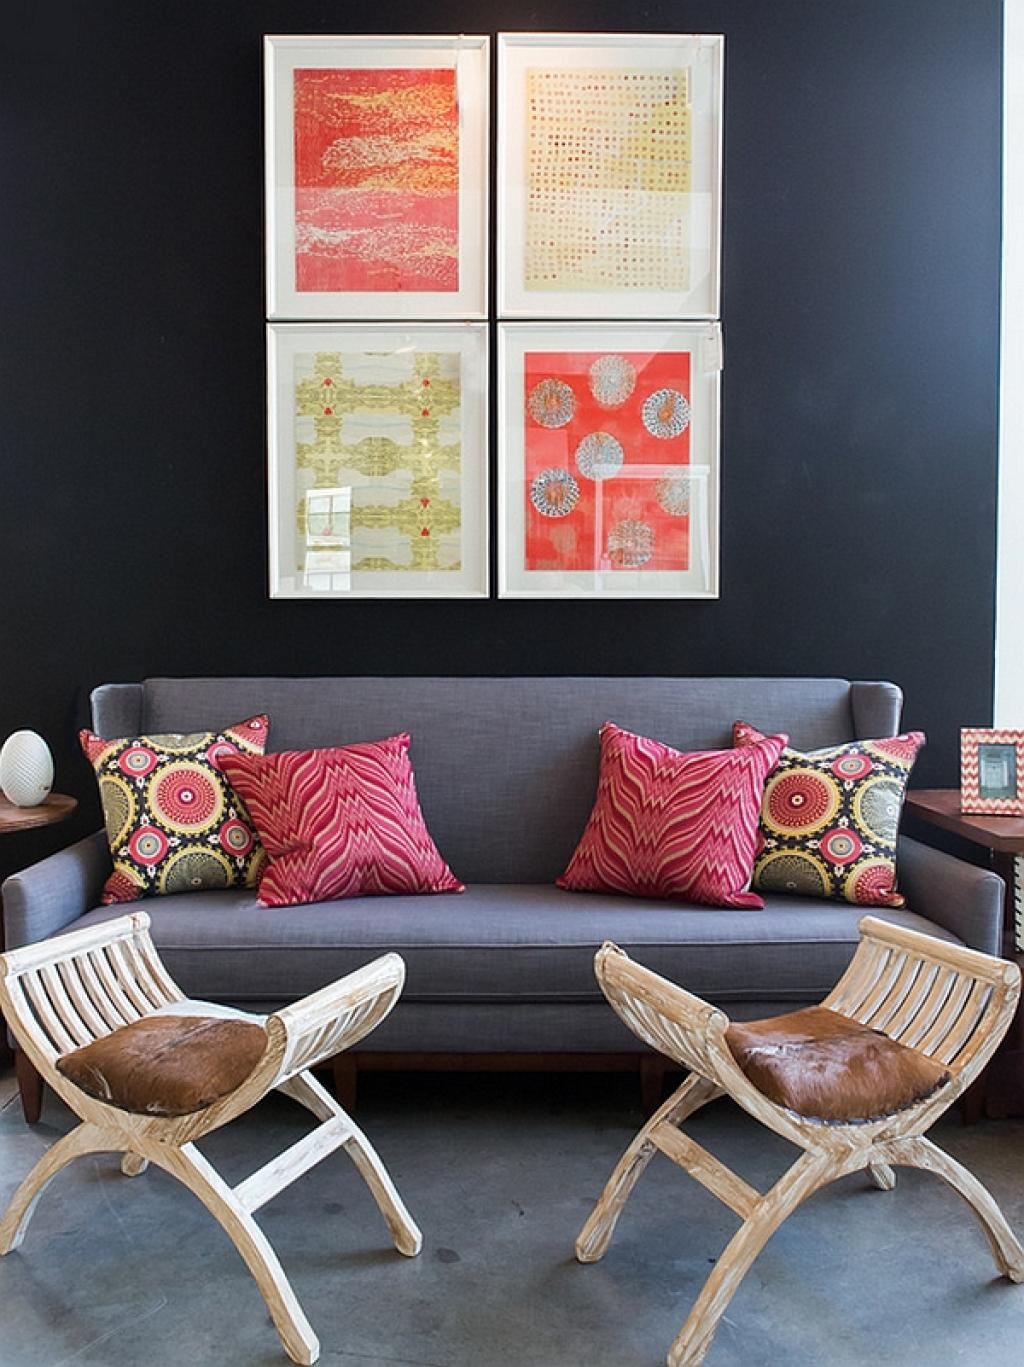 modern-small-and-minimalist-bohemian-interior-design-ideas-for-seating-area